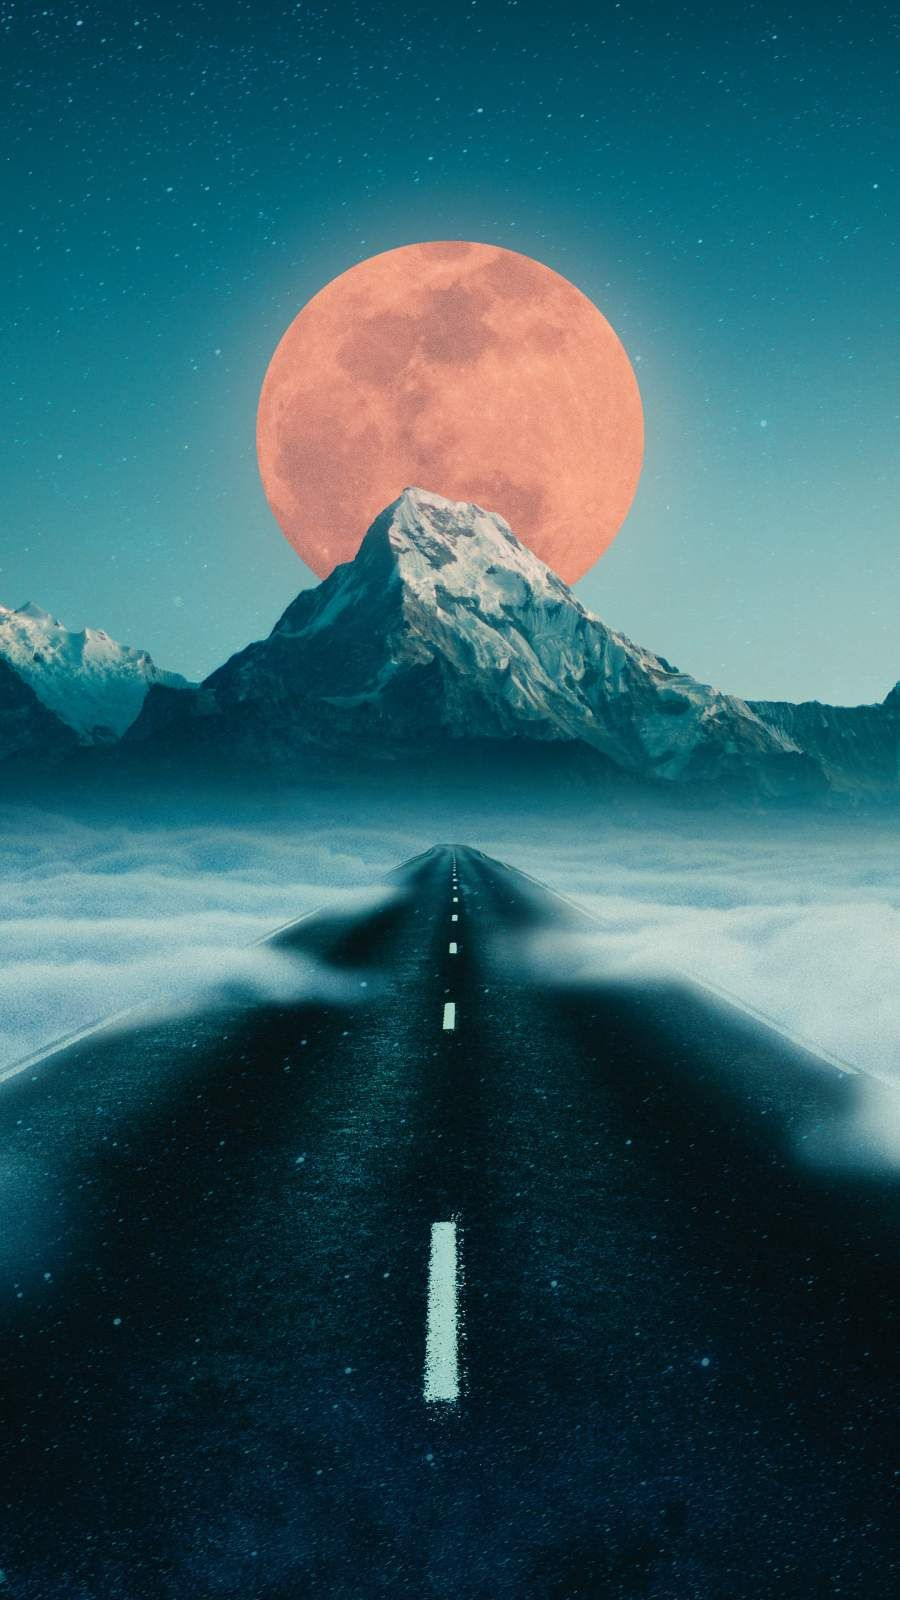 road to moon iphone wallpaper wallpaper backgrounds